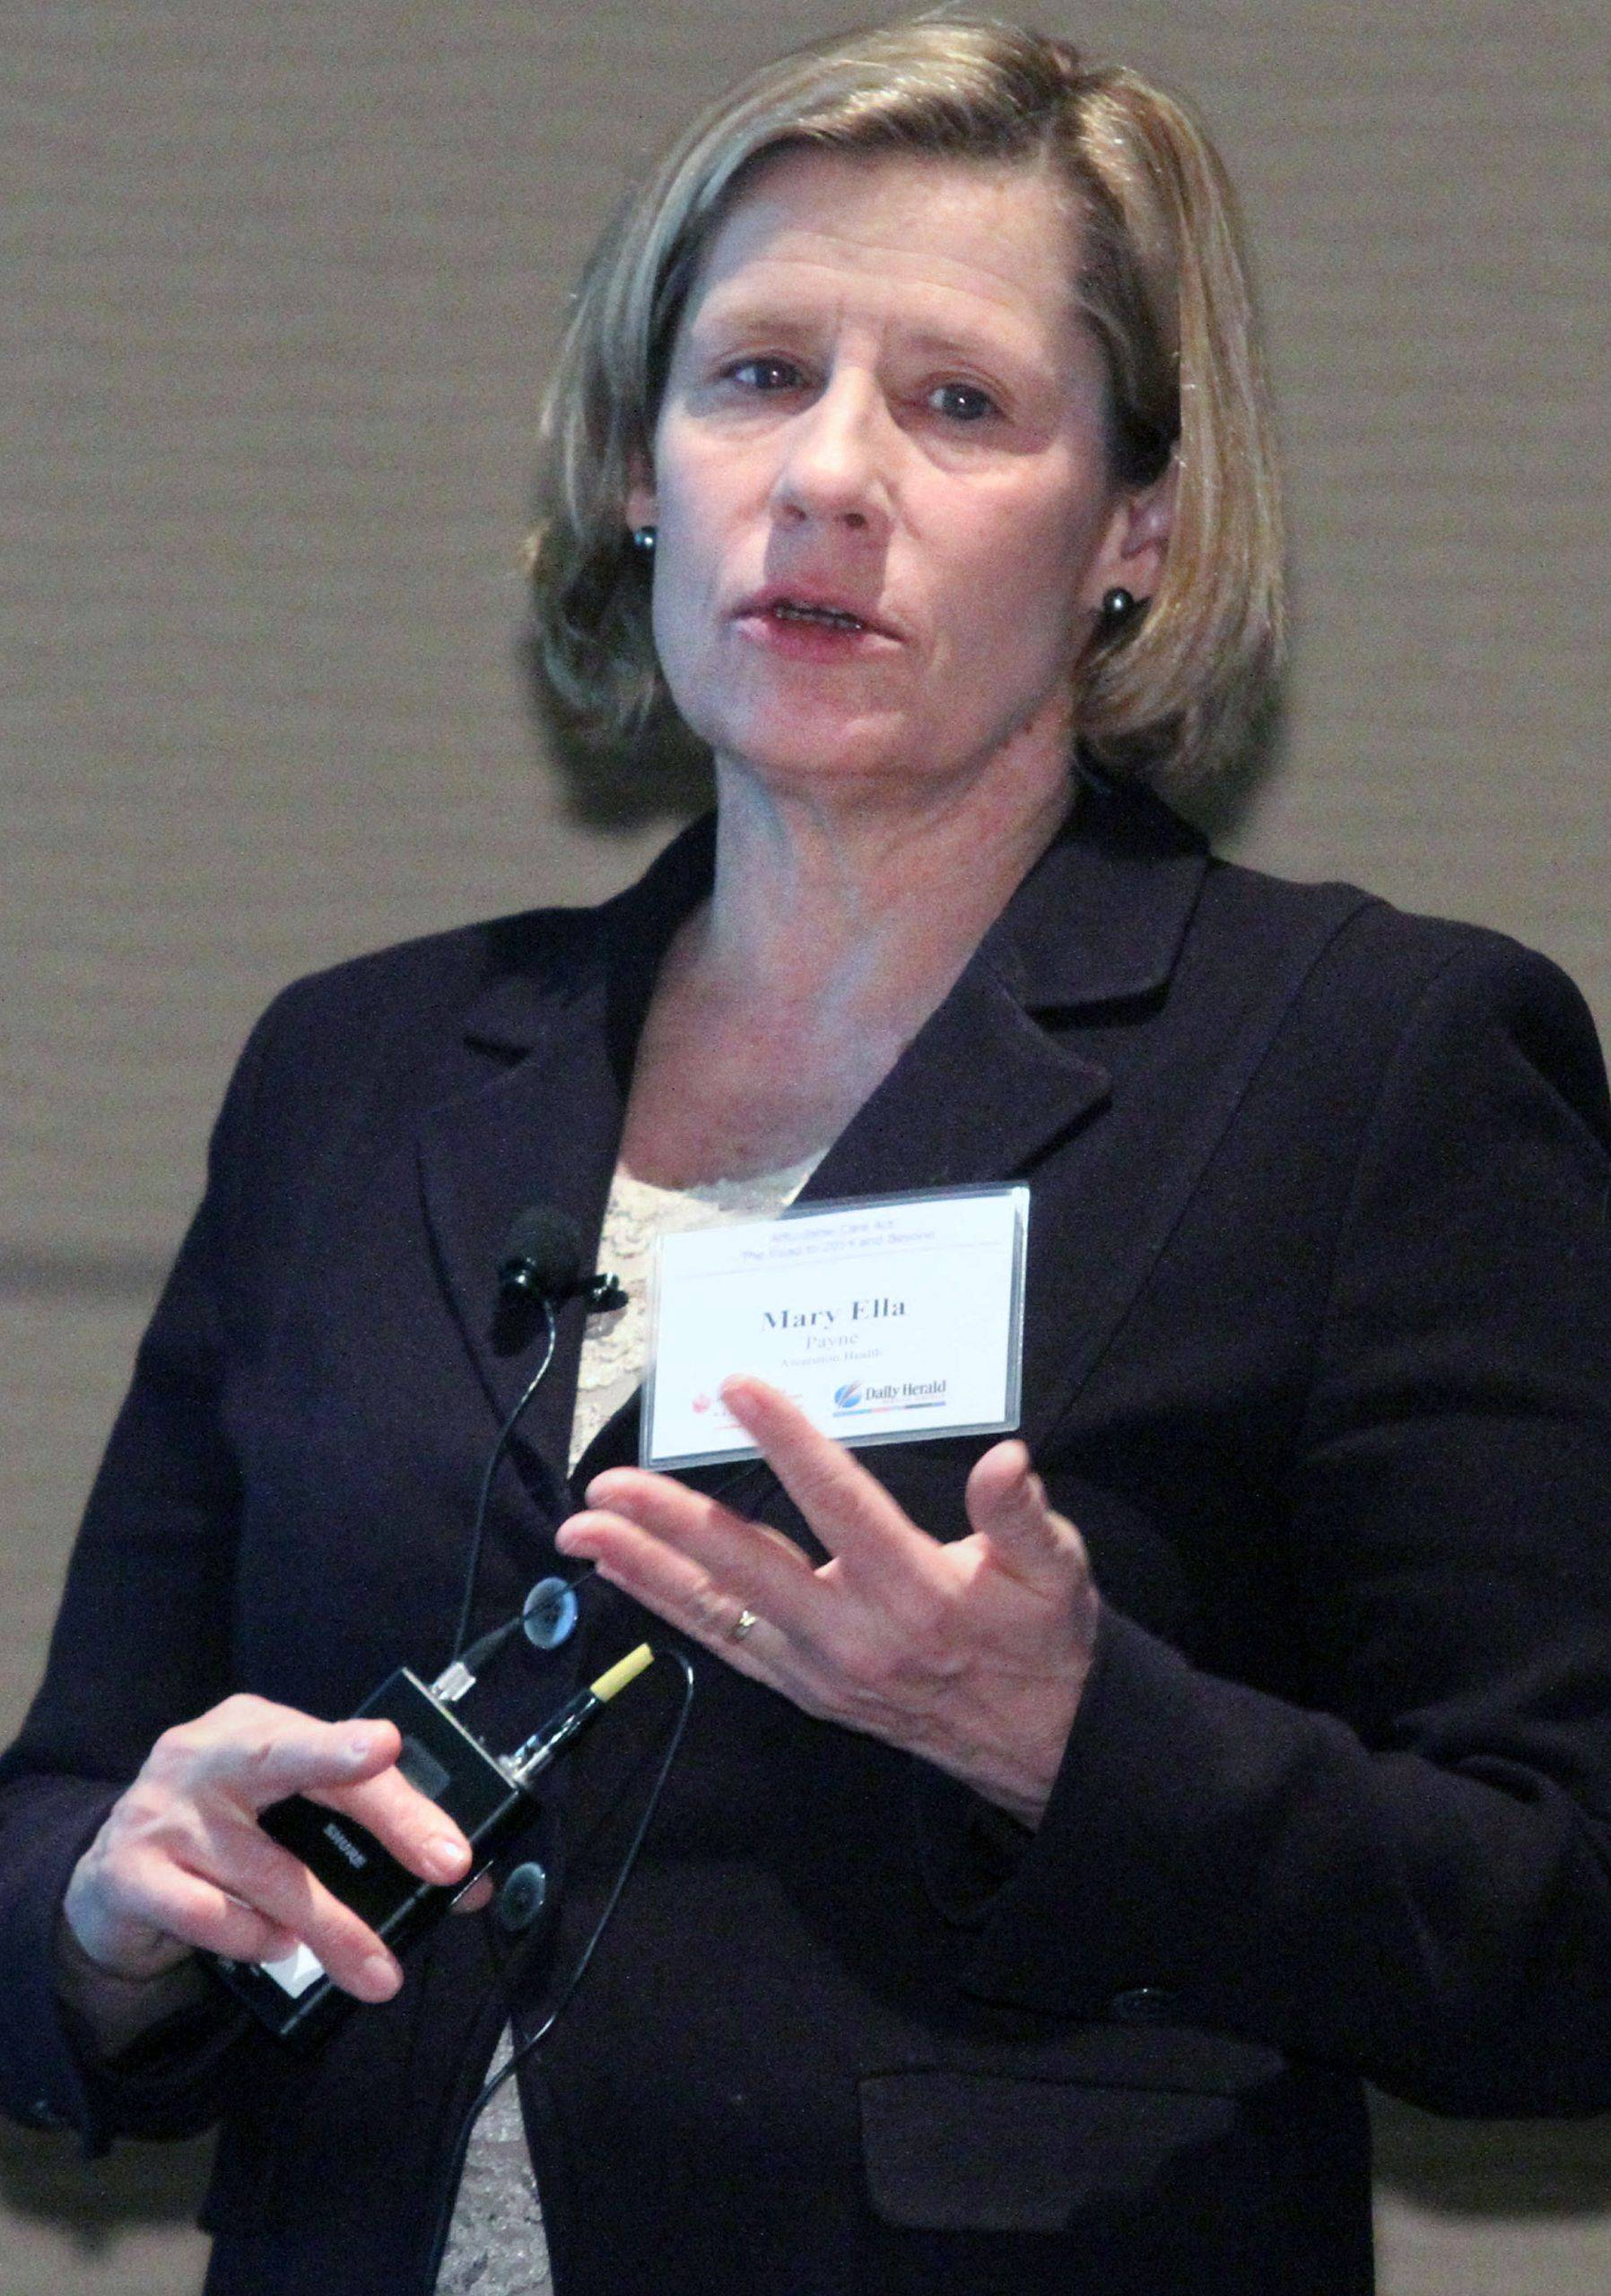 Mary Ella Payne, senior vice president of policy and system legislative leadership at Ascension Health in Washington, D.C., spoke about the Affordable Care Act in a forum sponsored by the Alexian Brothers Health System and Daily Herald Media Group.